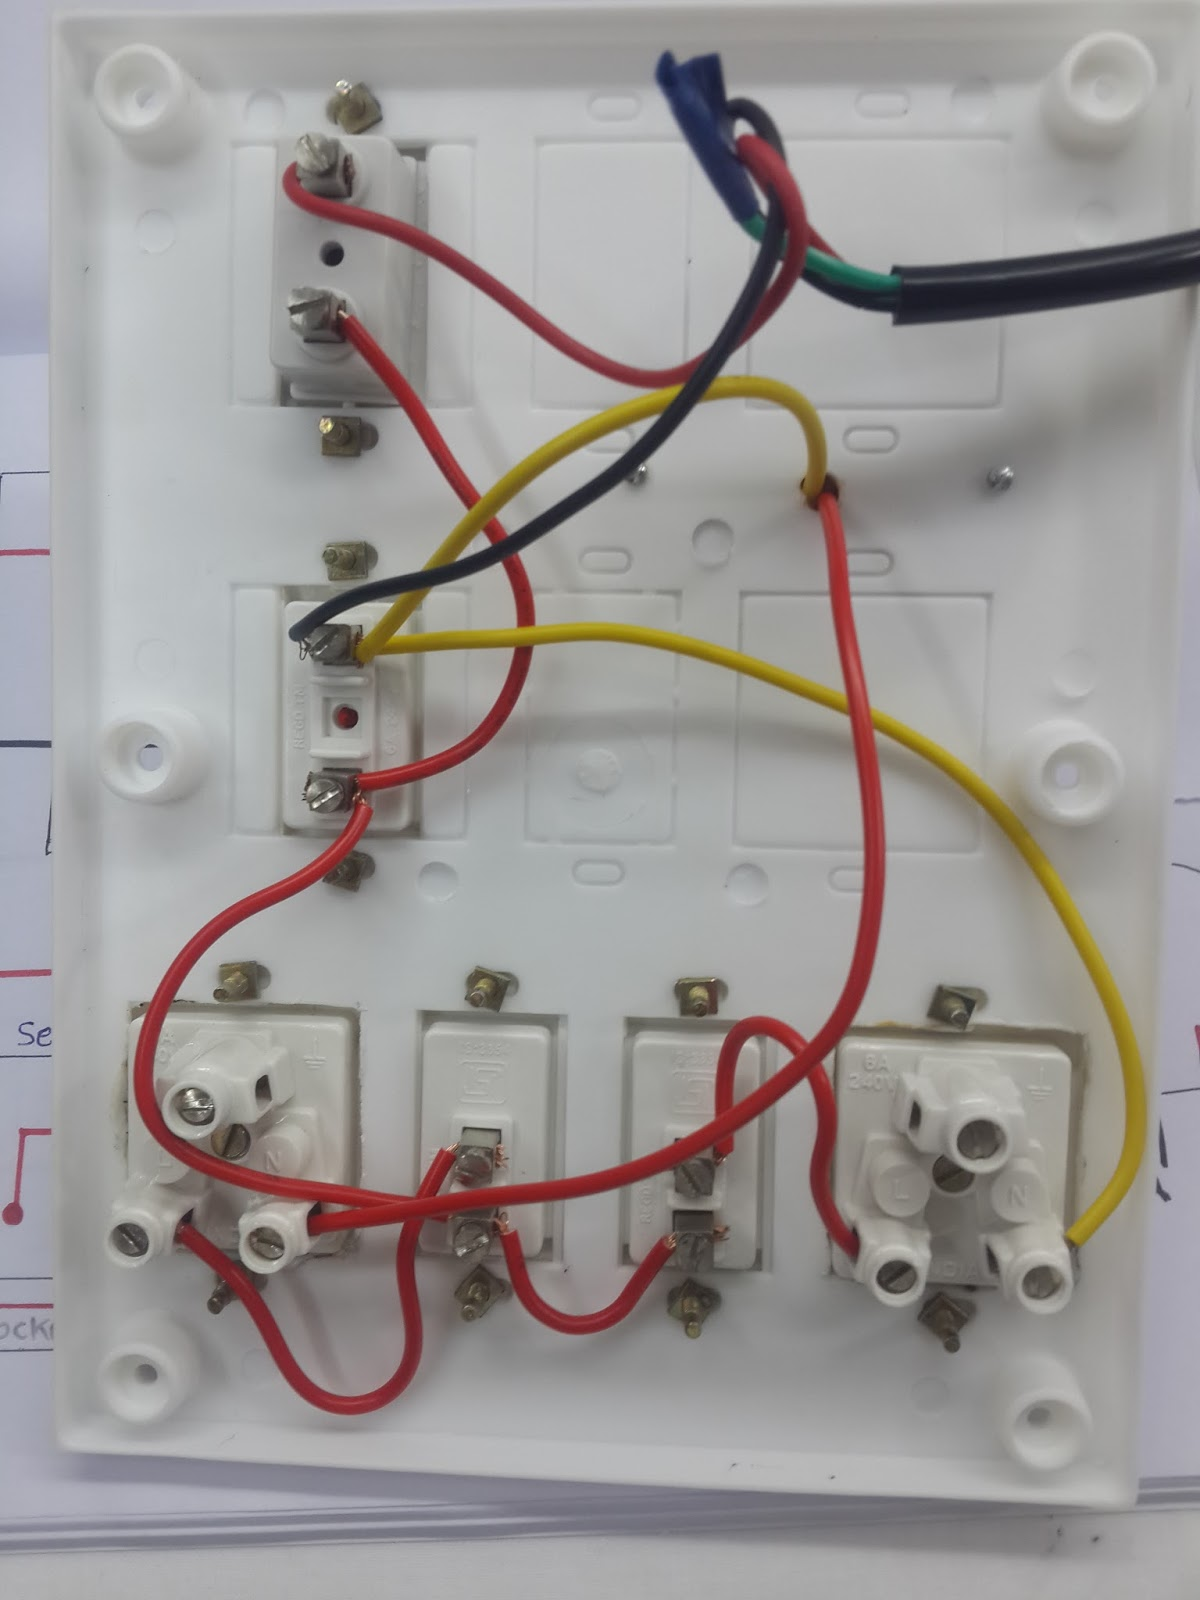 How To Make Series Parallel Electrical Testing Board In Hindi Deepakkumar Yadav